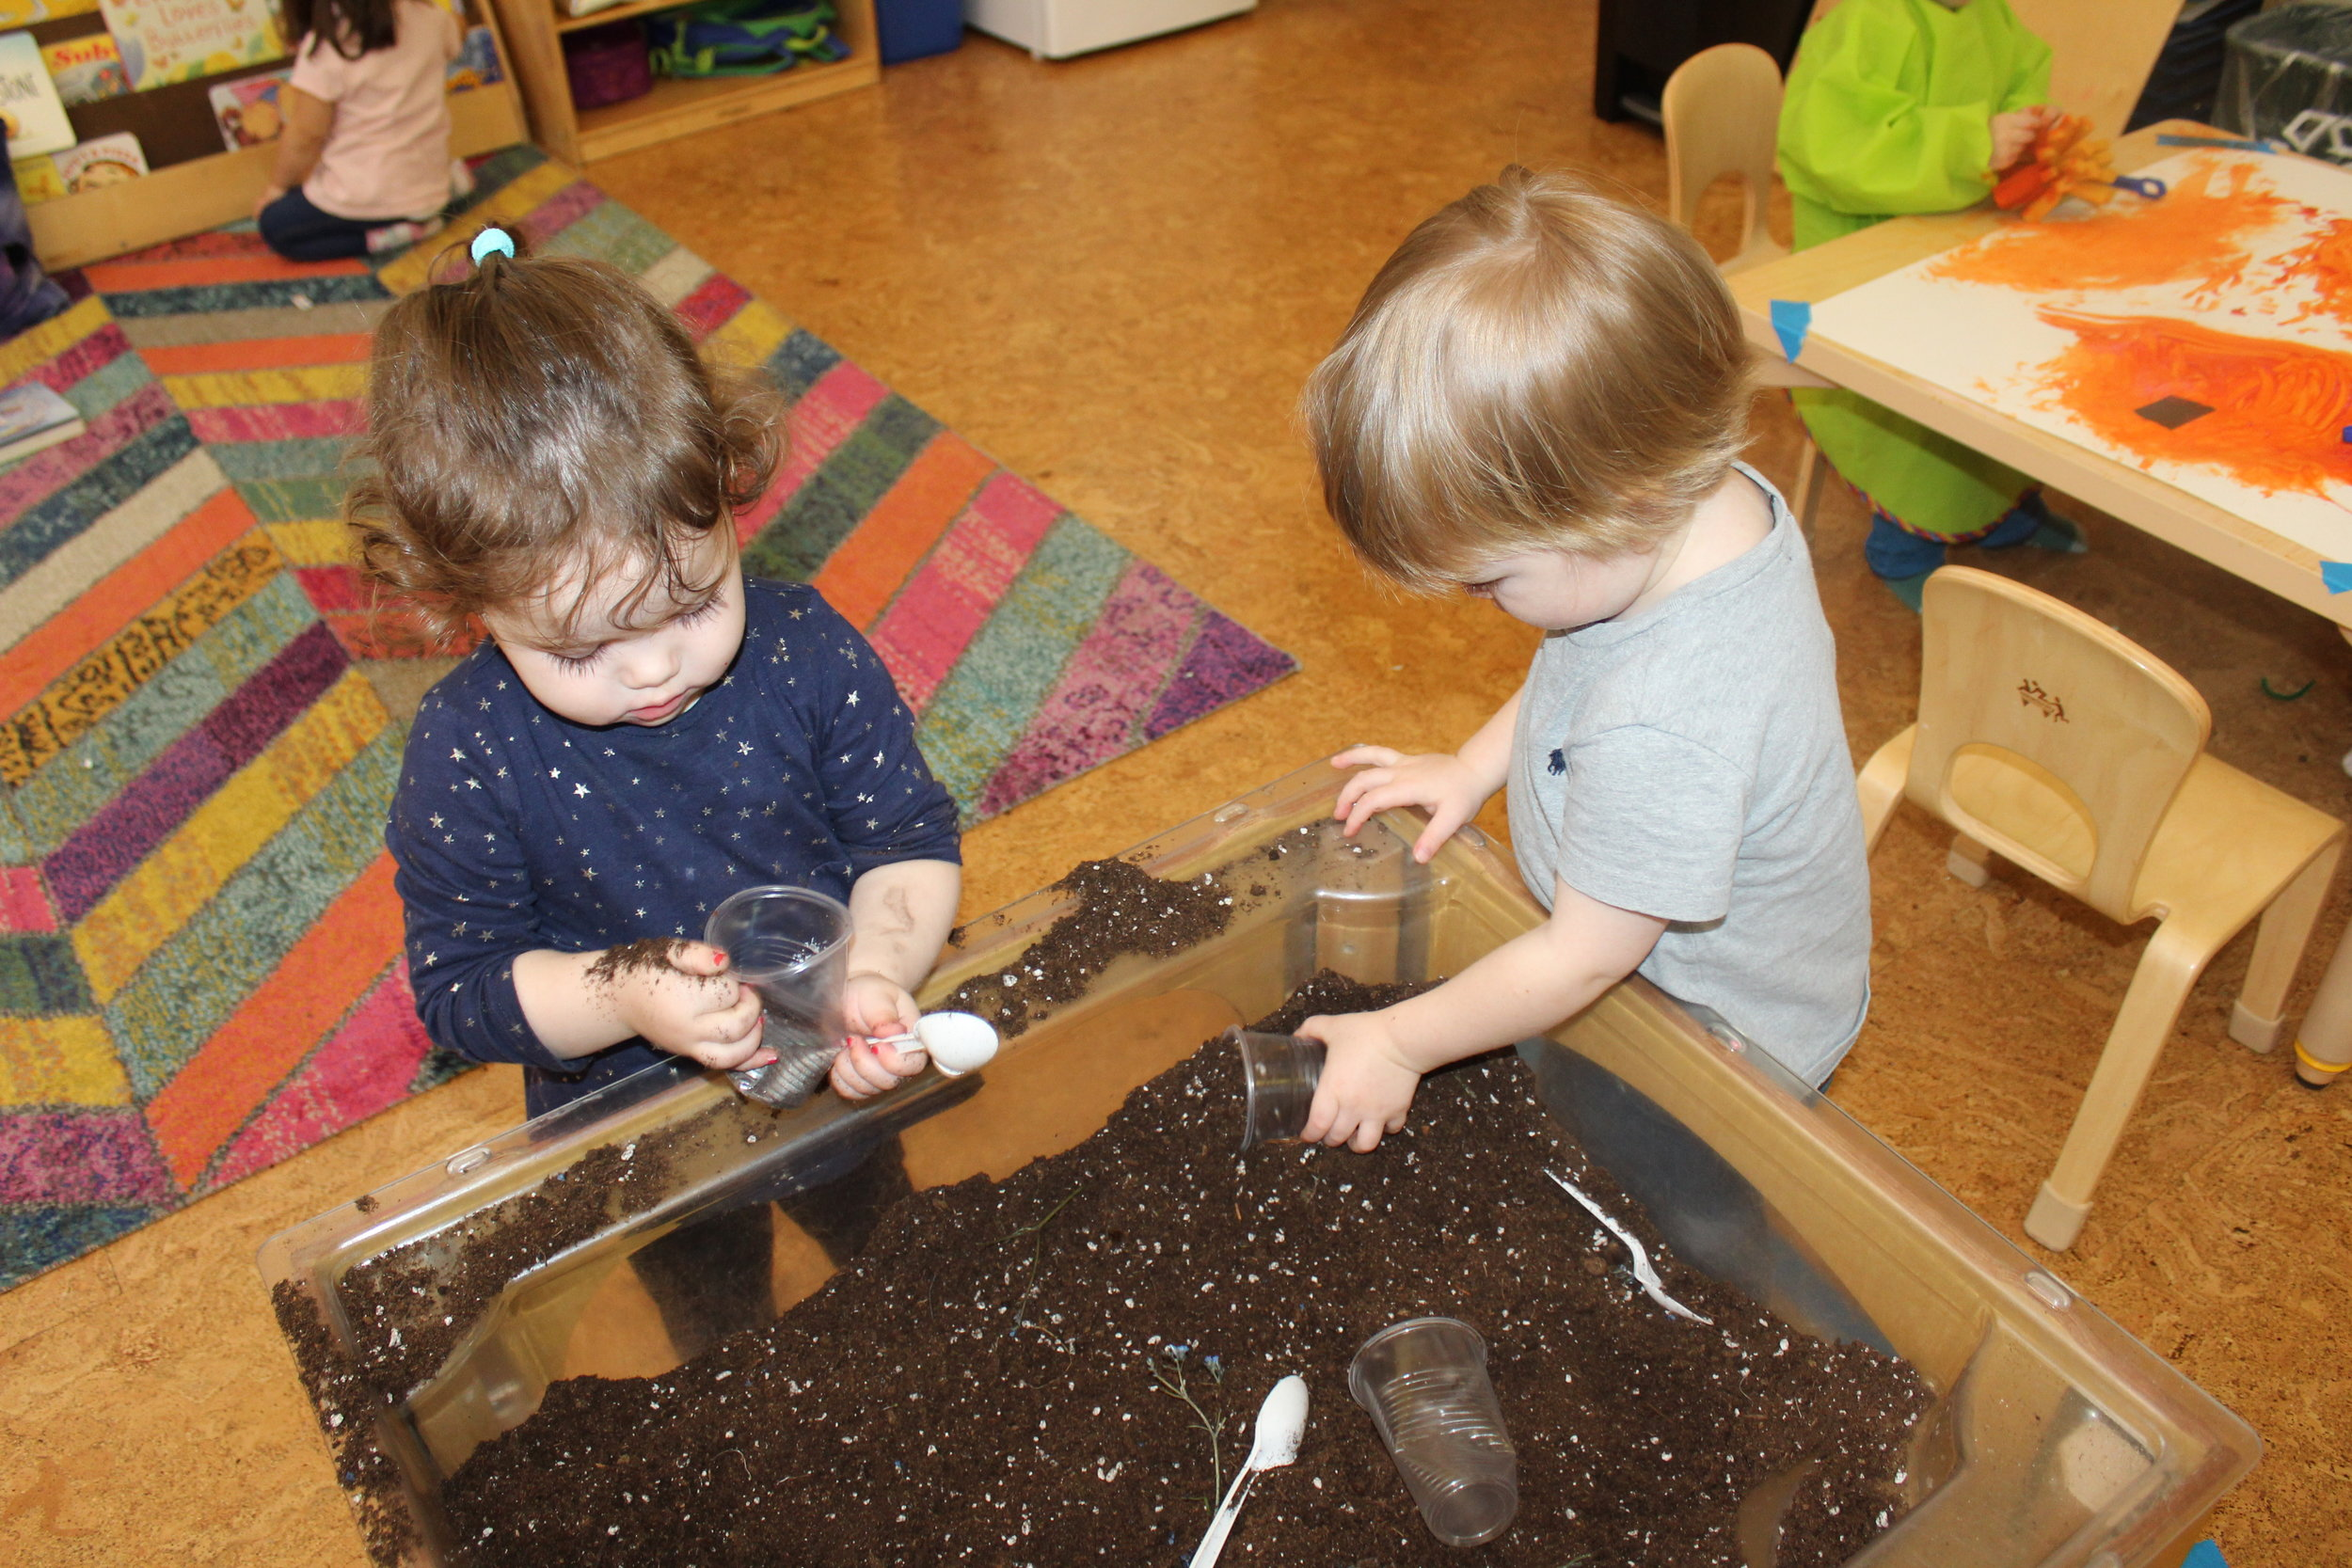 The children were excited to explore soil! The soil is one of the natural element for planting. They squeezed, touched,  and clutched some in their hands to pour it into a cup. They scooped and emptied small cups. We also included some props in the soil, to make the exploration fun, interesting and realistic (insects and branches).